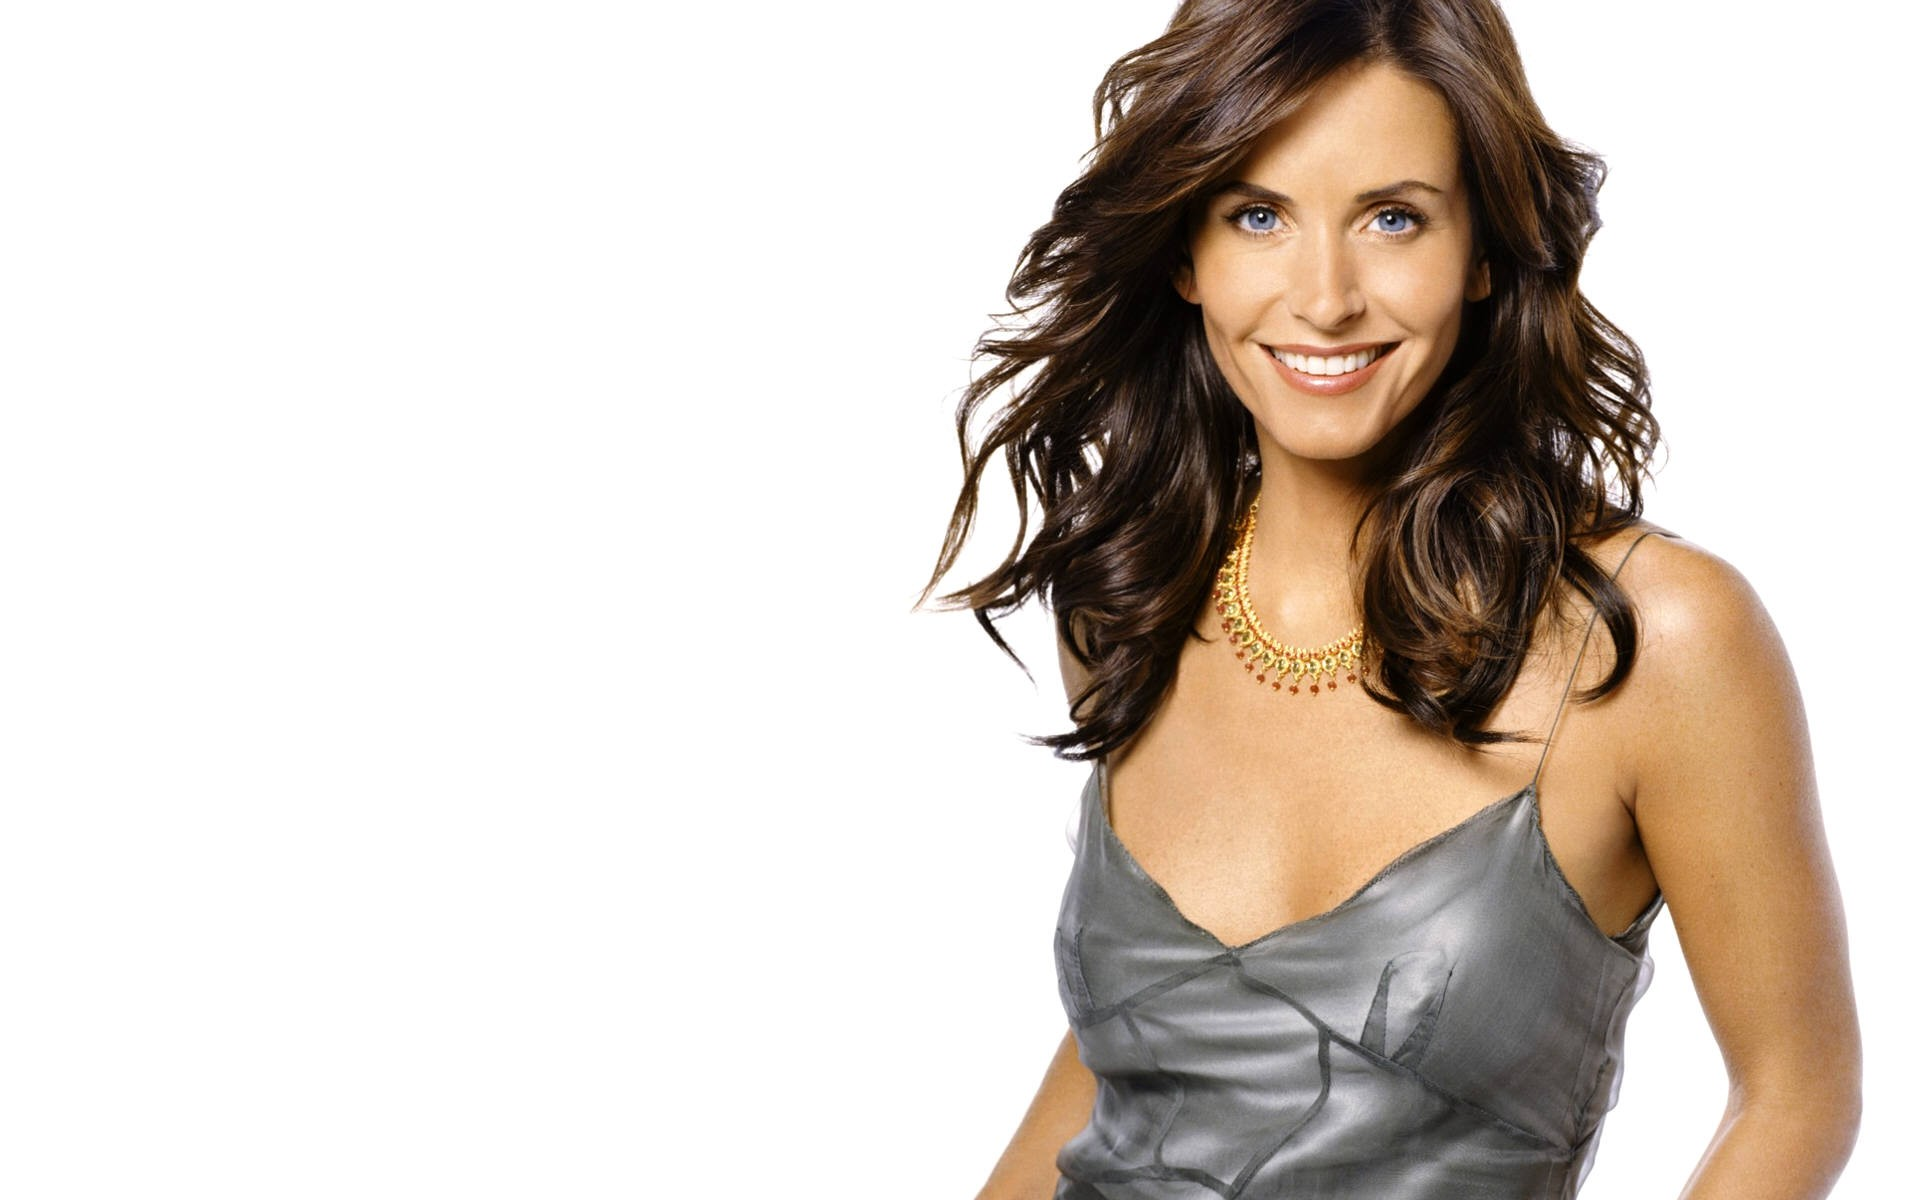 1920x1200 - Courtney Cox Wallpapers 6